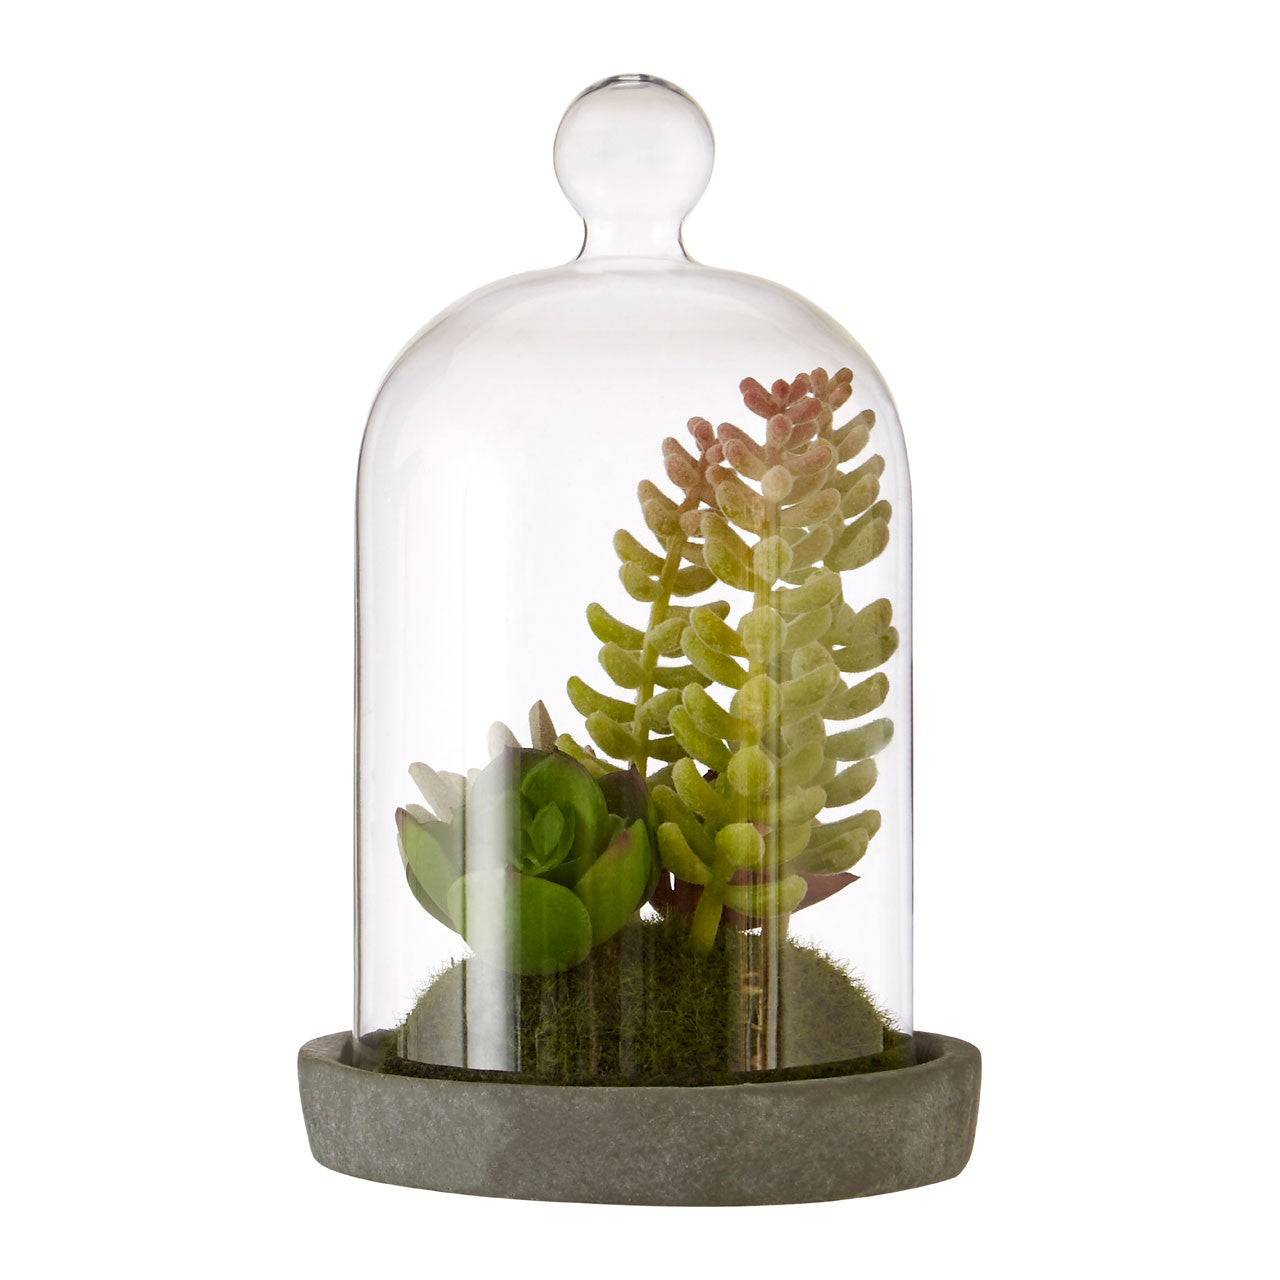 HoF Living Faux Succulent Plant In Glass Dome